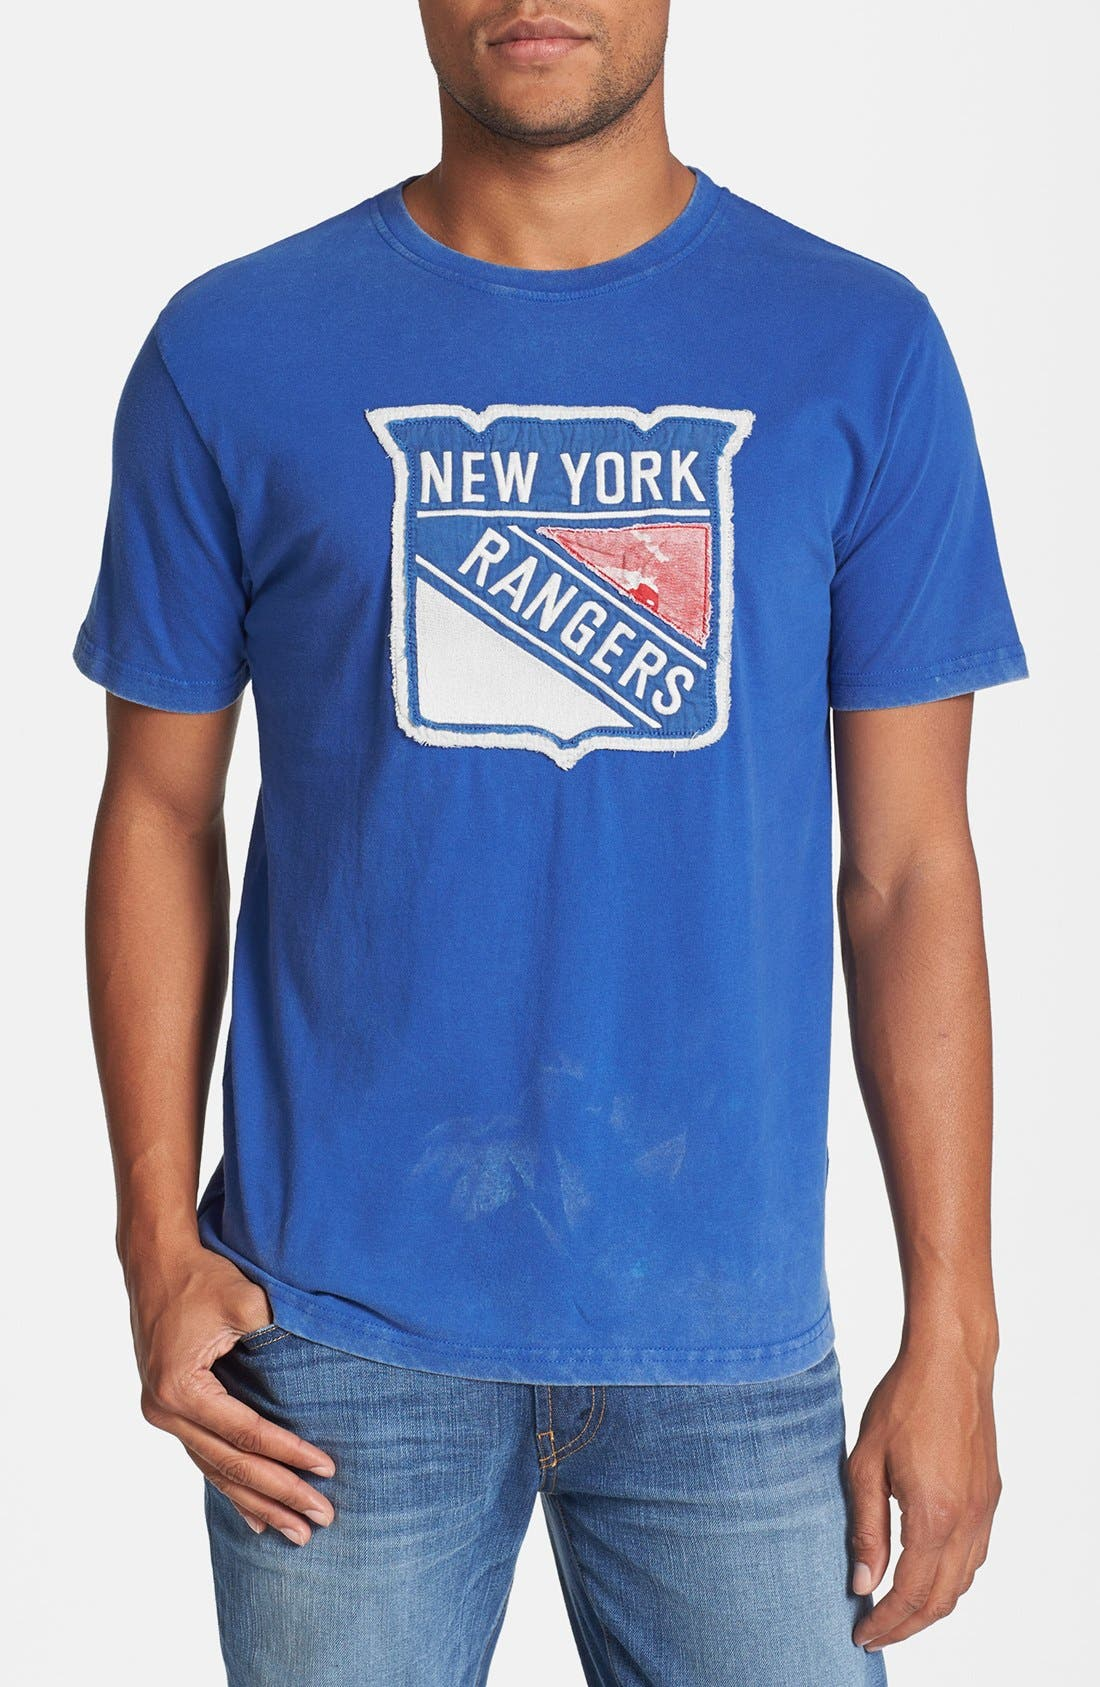 RED JACKET 'Deadringer - New York Rangers' T-Shirt